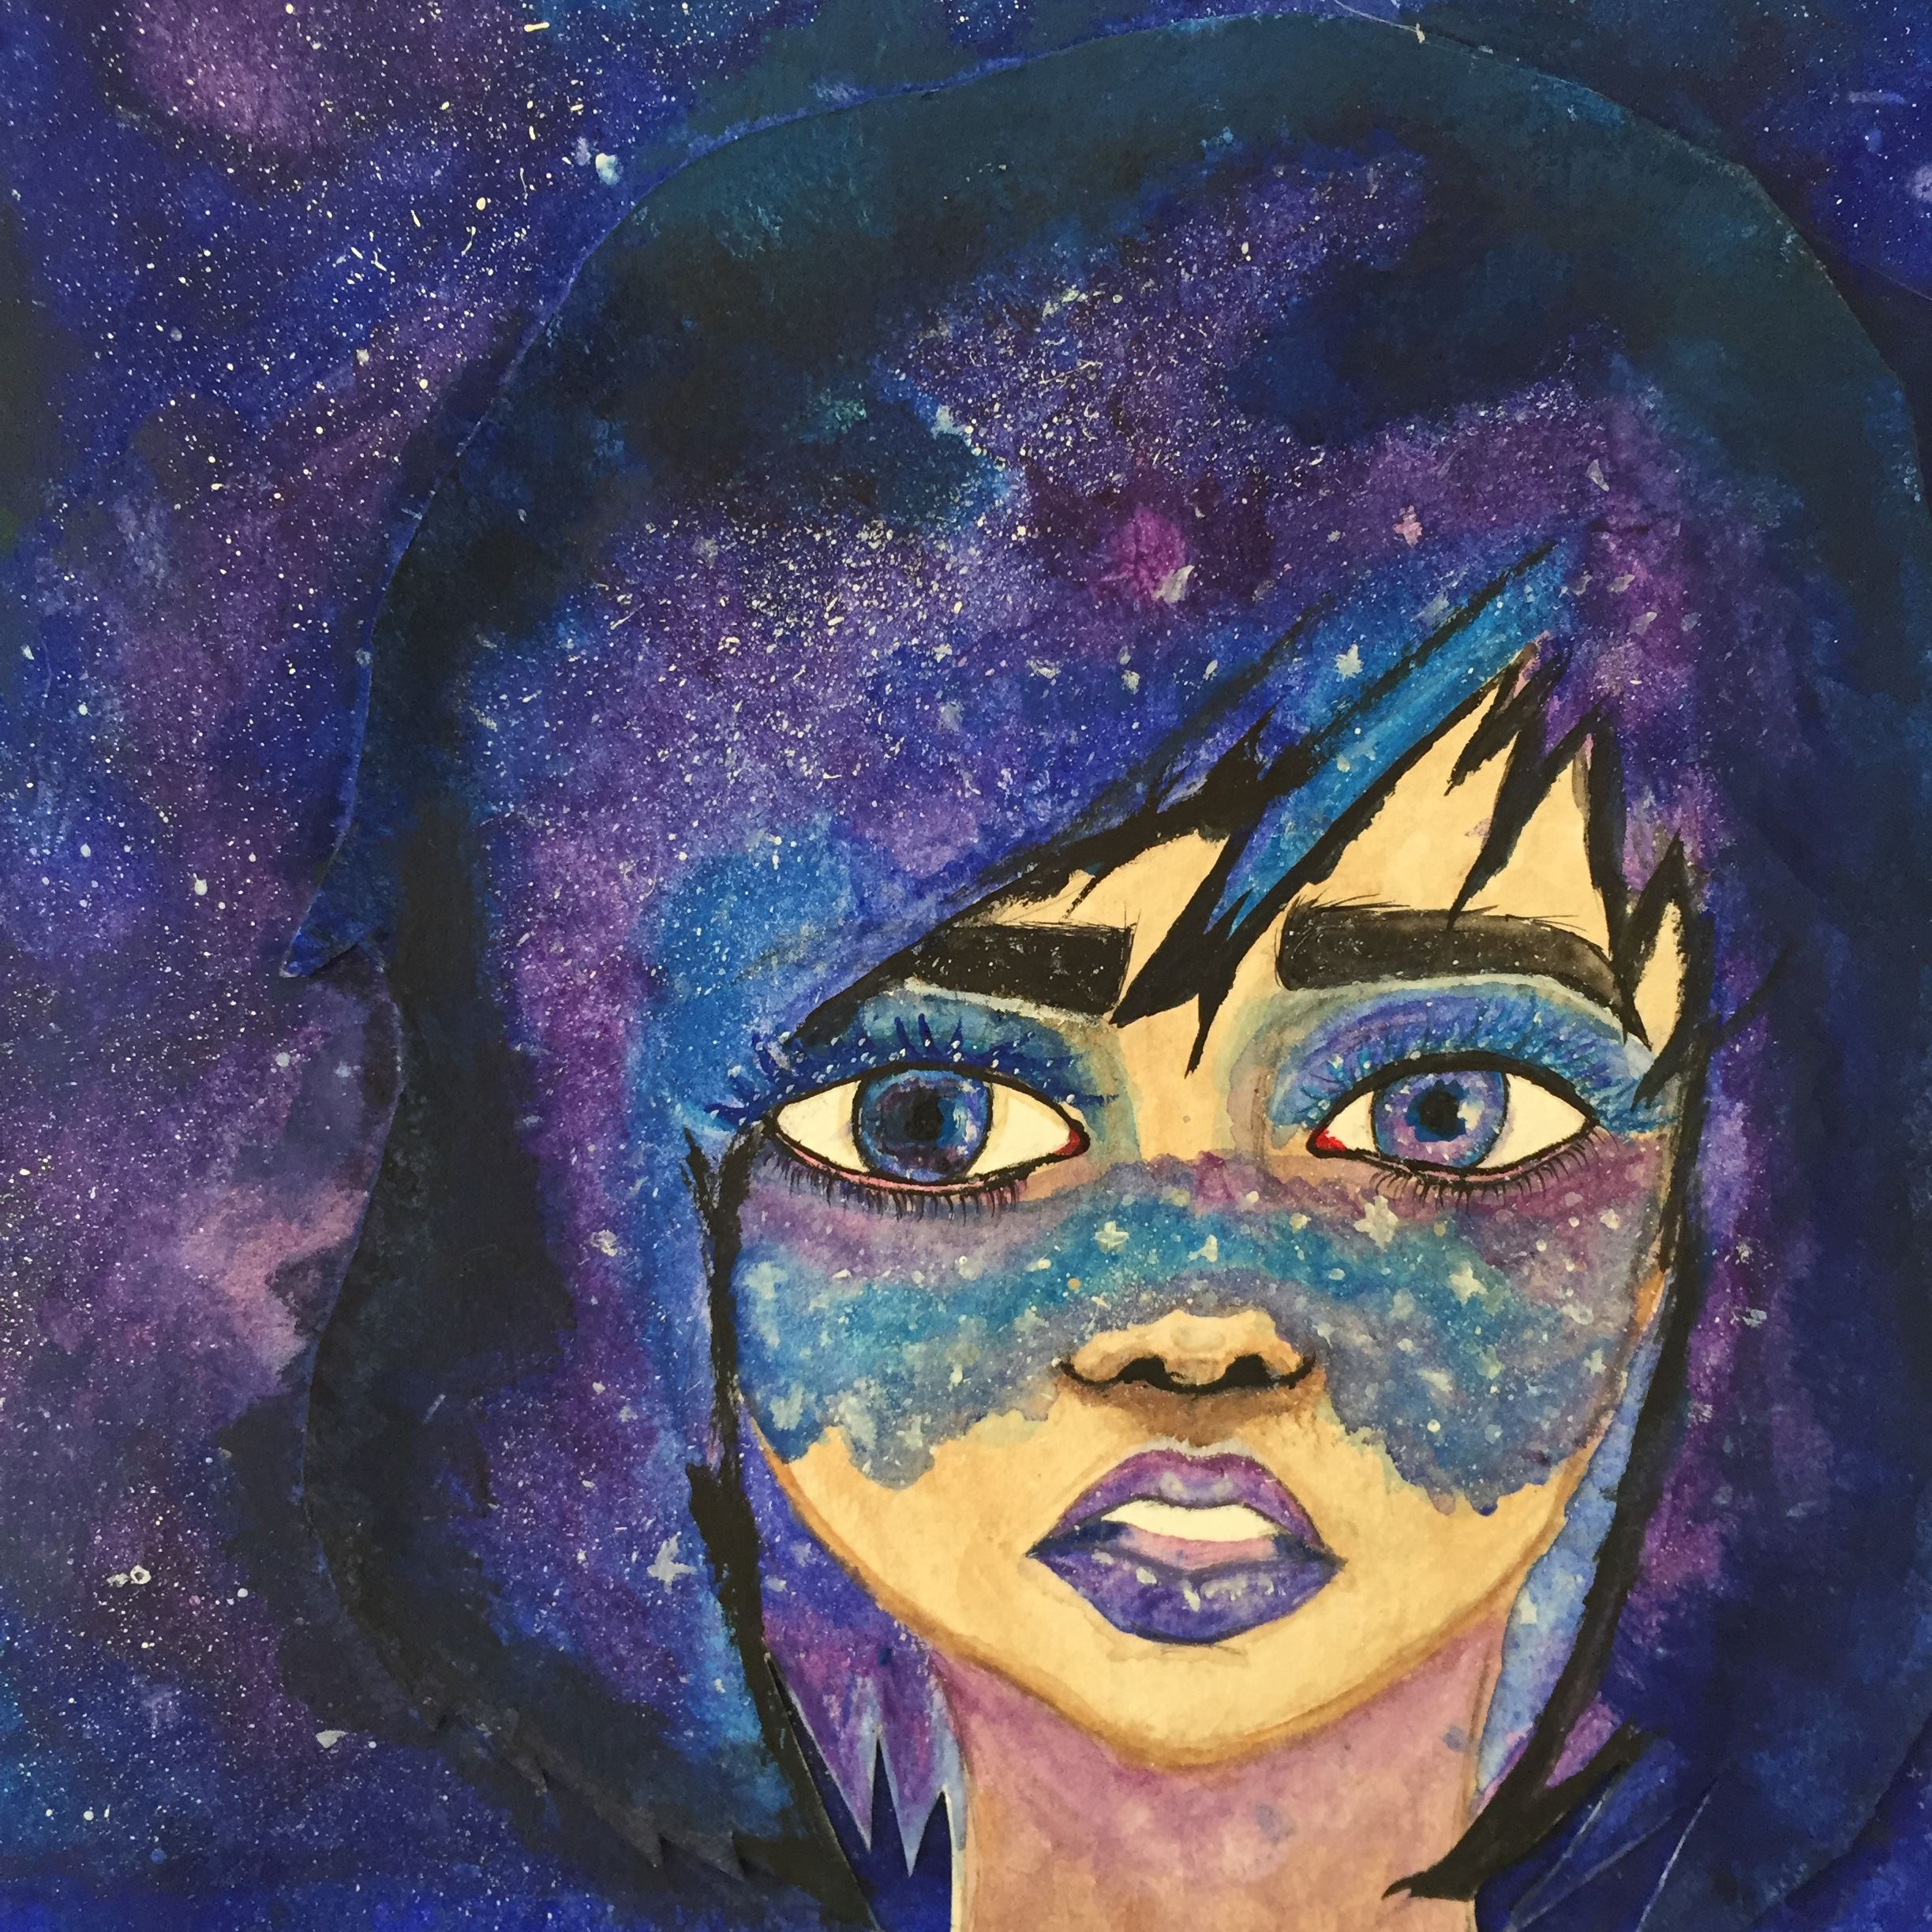 Painting of purple galaxy and woman's face